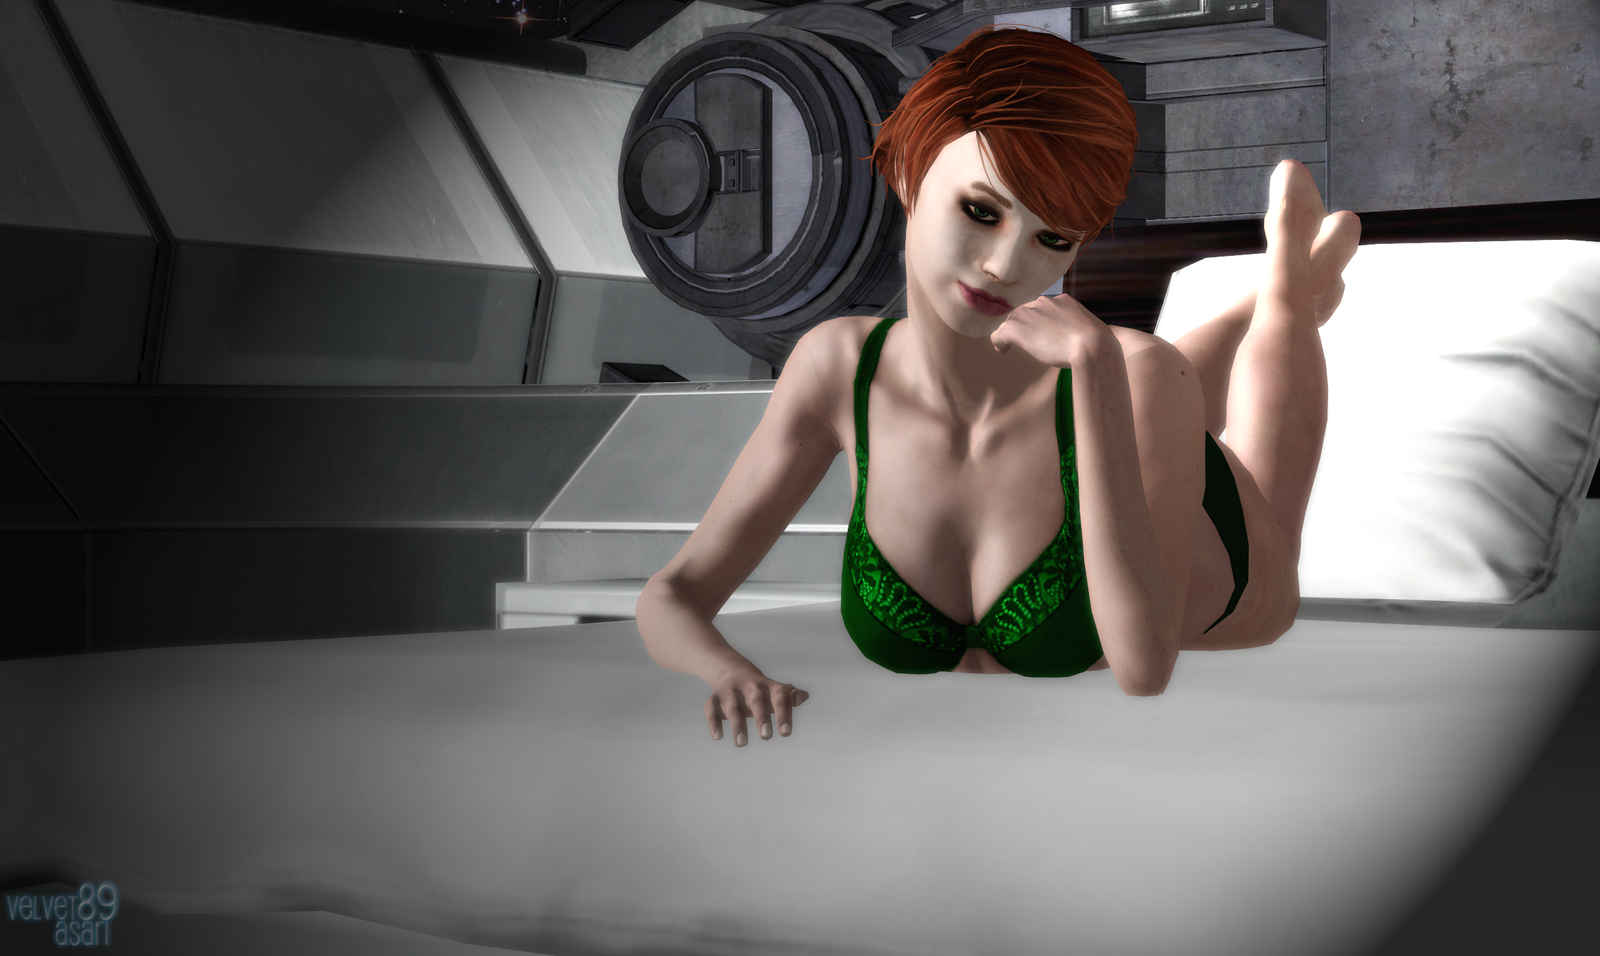 Mass effect kelly porn exposed porn star